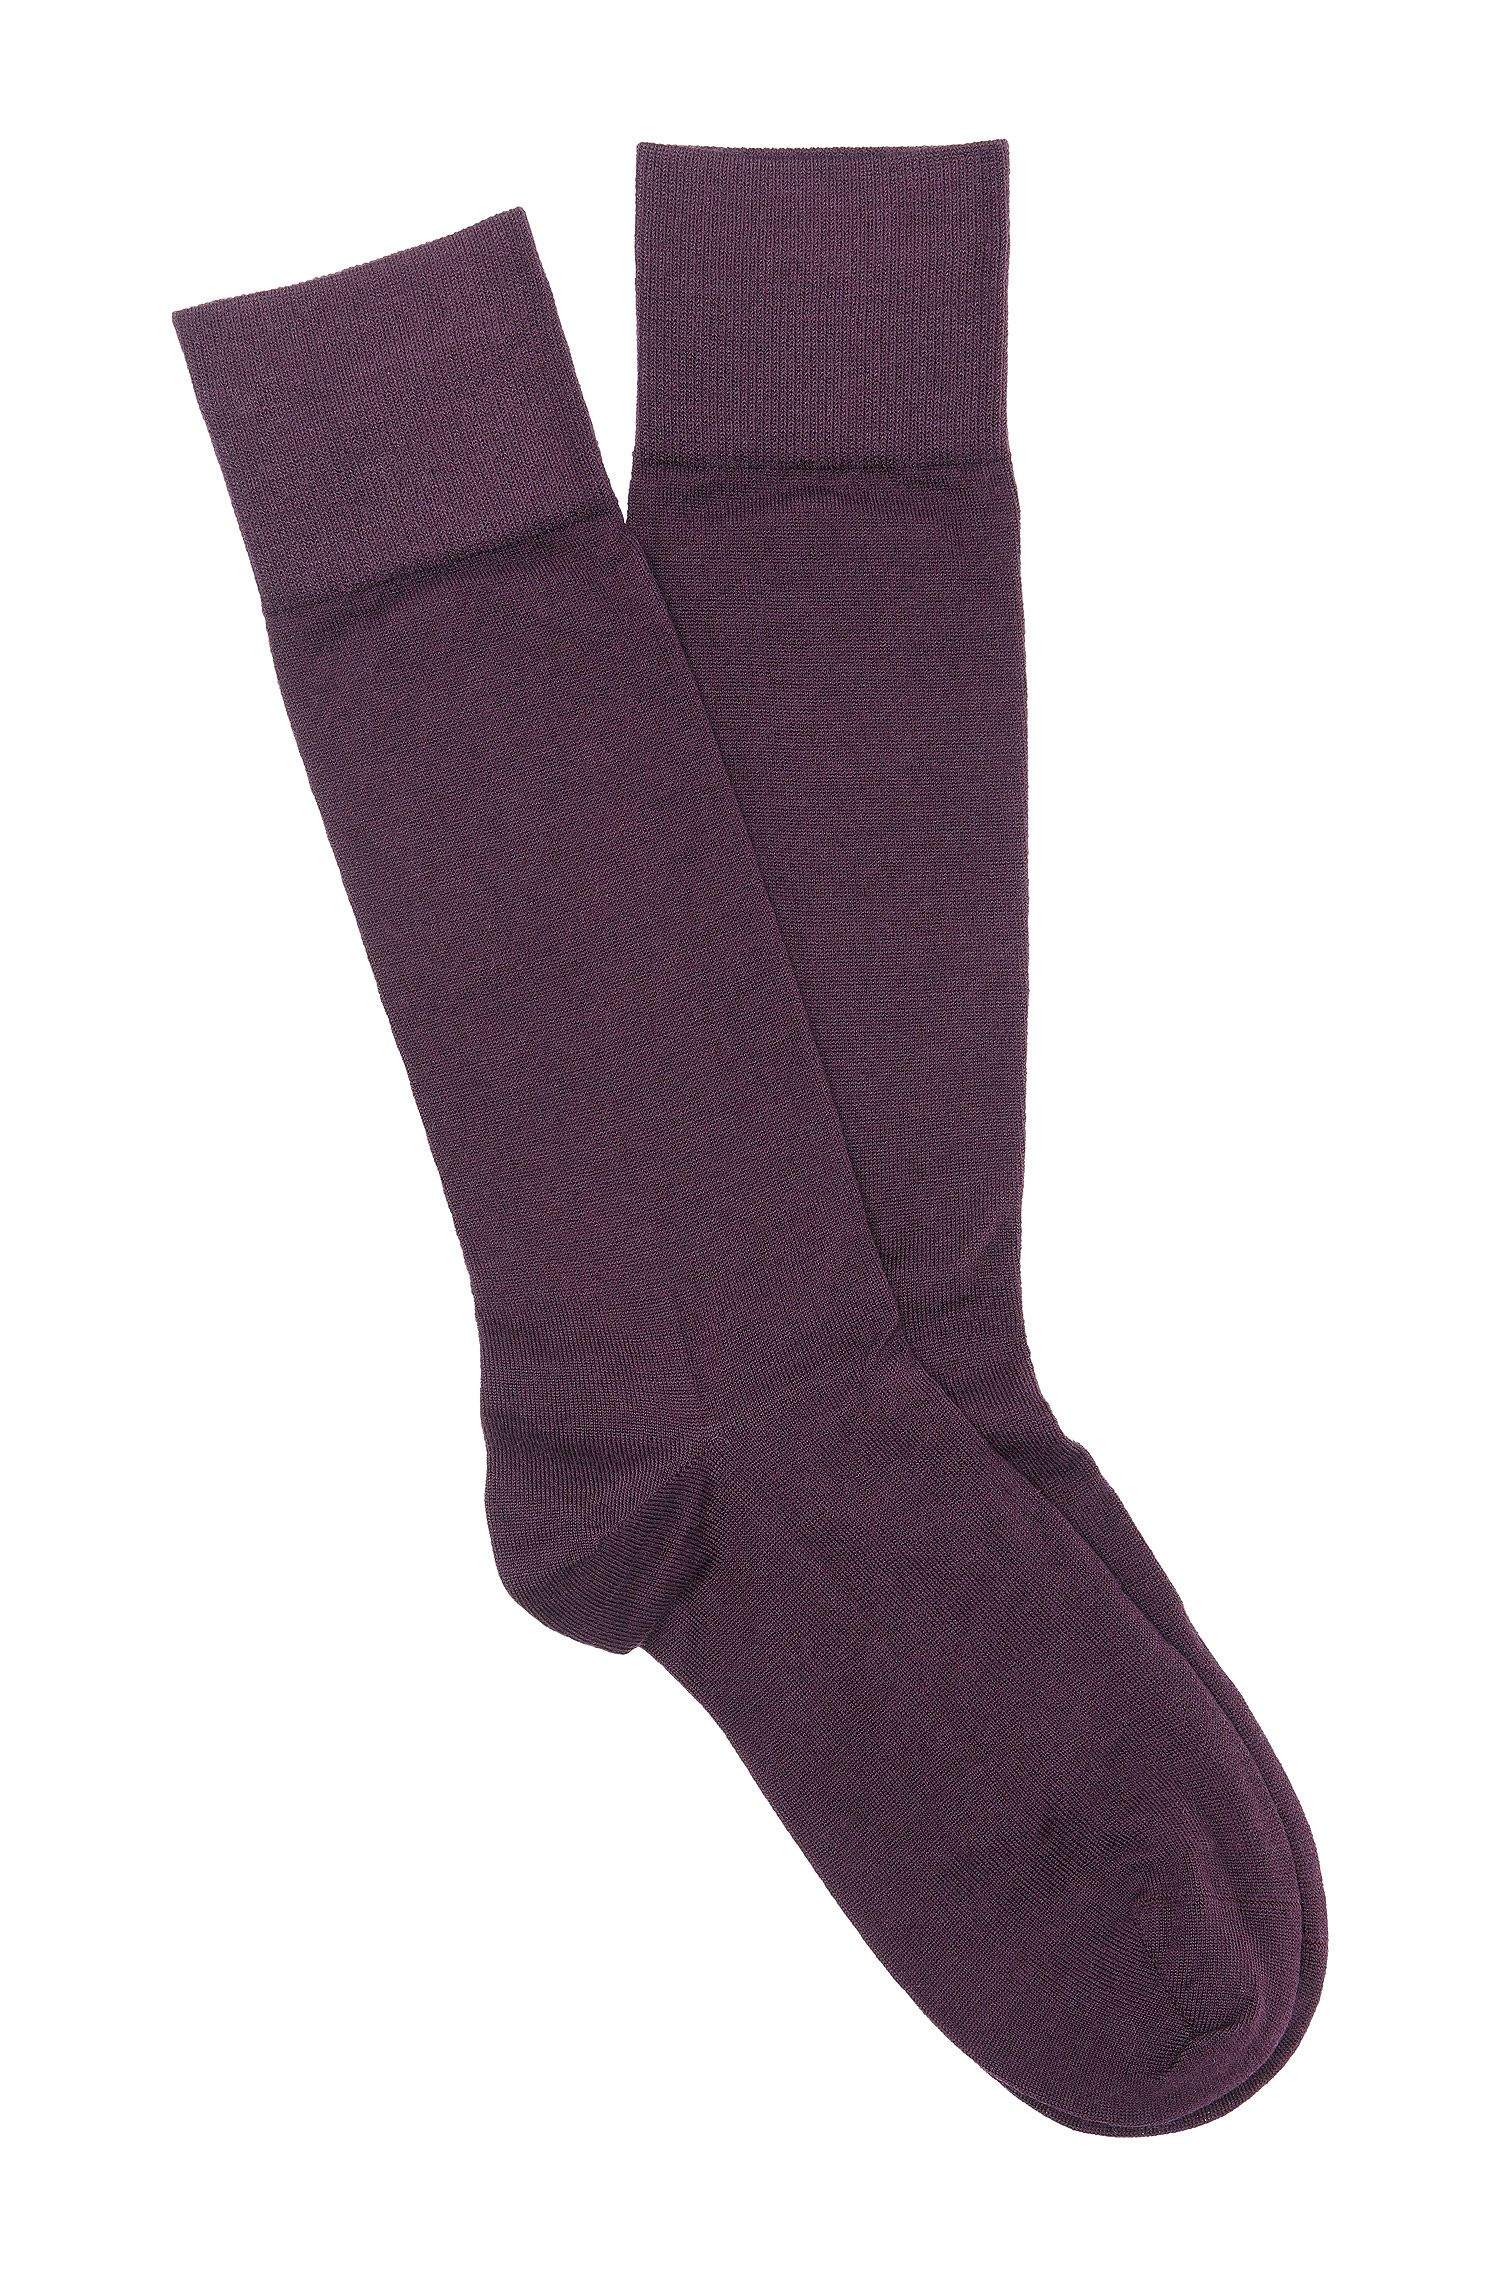 Socks 'TL Cashmere RS' in cashmere blend, Dark Purple